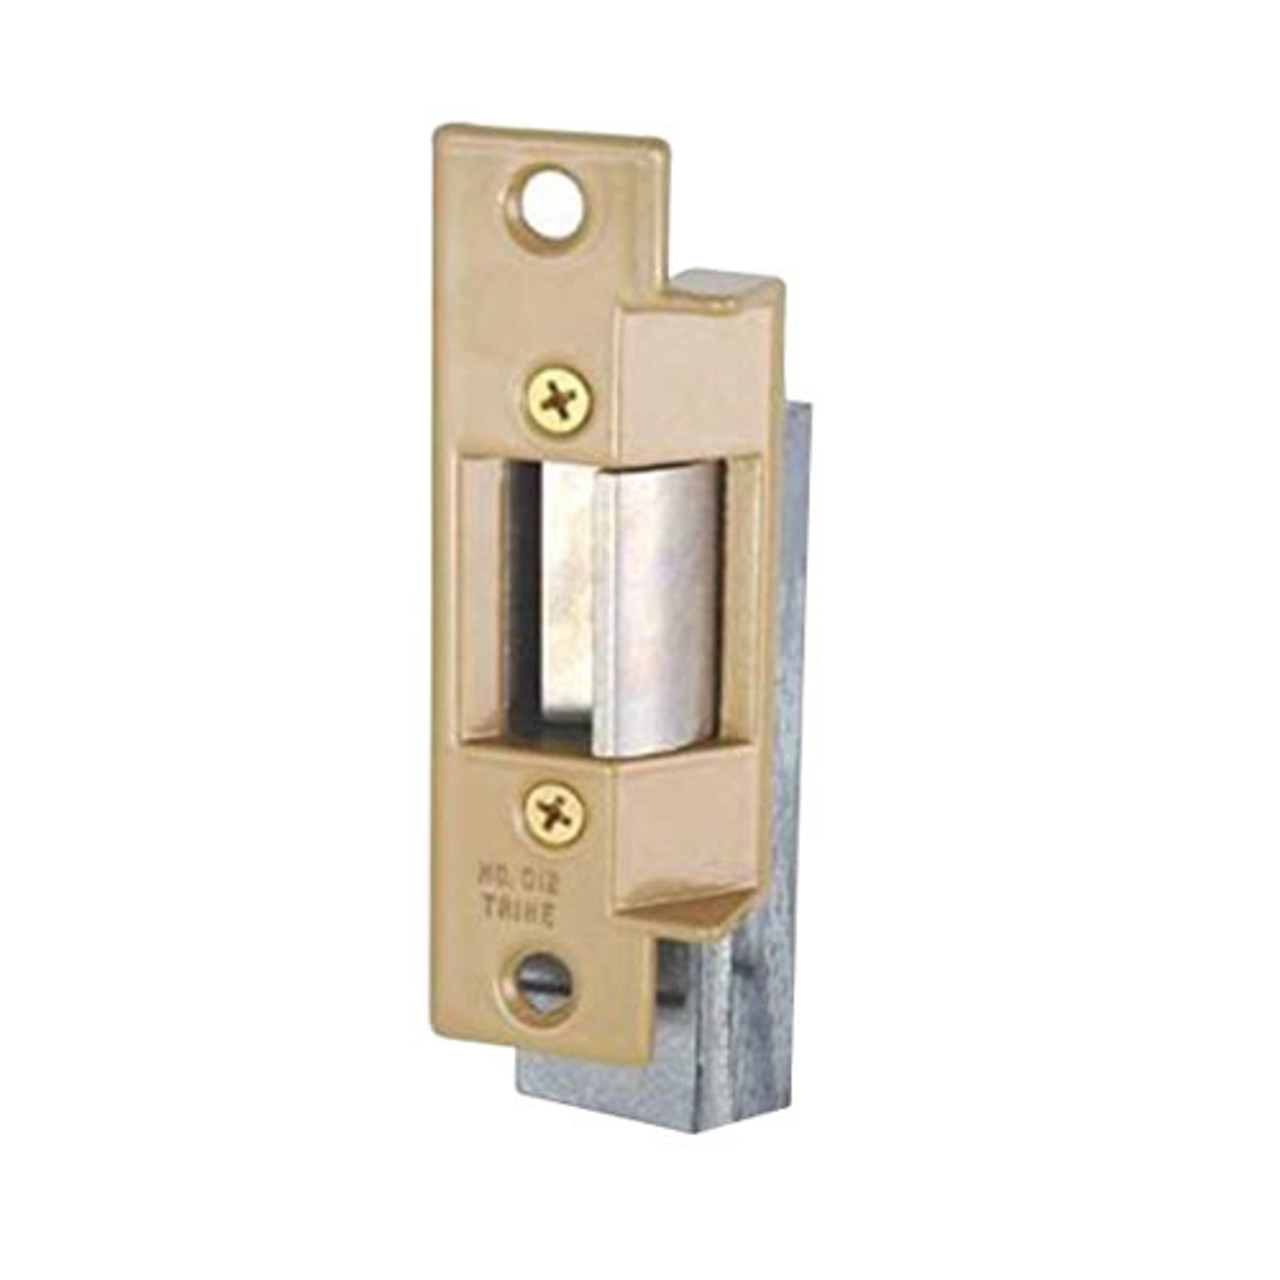 012-24DC Trine Light Commercial ANSI 01 Series Electric Strikes in Brass Powder Finish